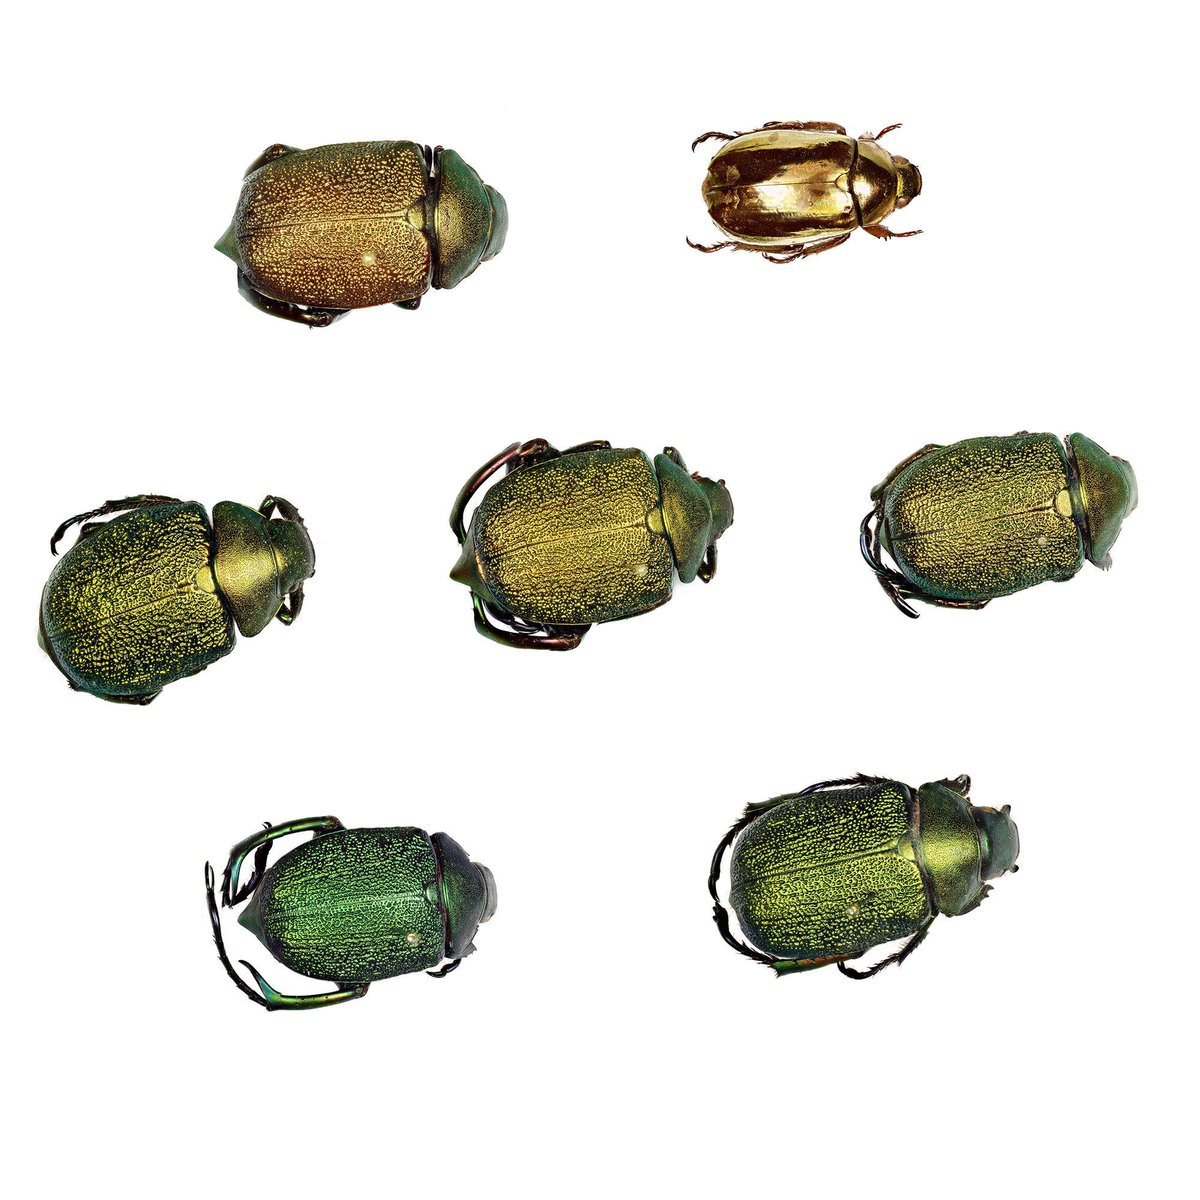 A little sparkle for your morning, courtesy of six leaf chafers of varying shades and one golden scarab. Their shiny green-gold forewings conceal a pair of much larger thin wings that make flight possible. Get a magnified look at their shiny beetle bodies: bit.ly/2ZDQTsK